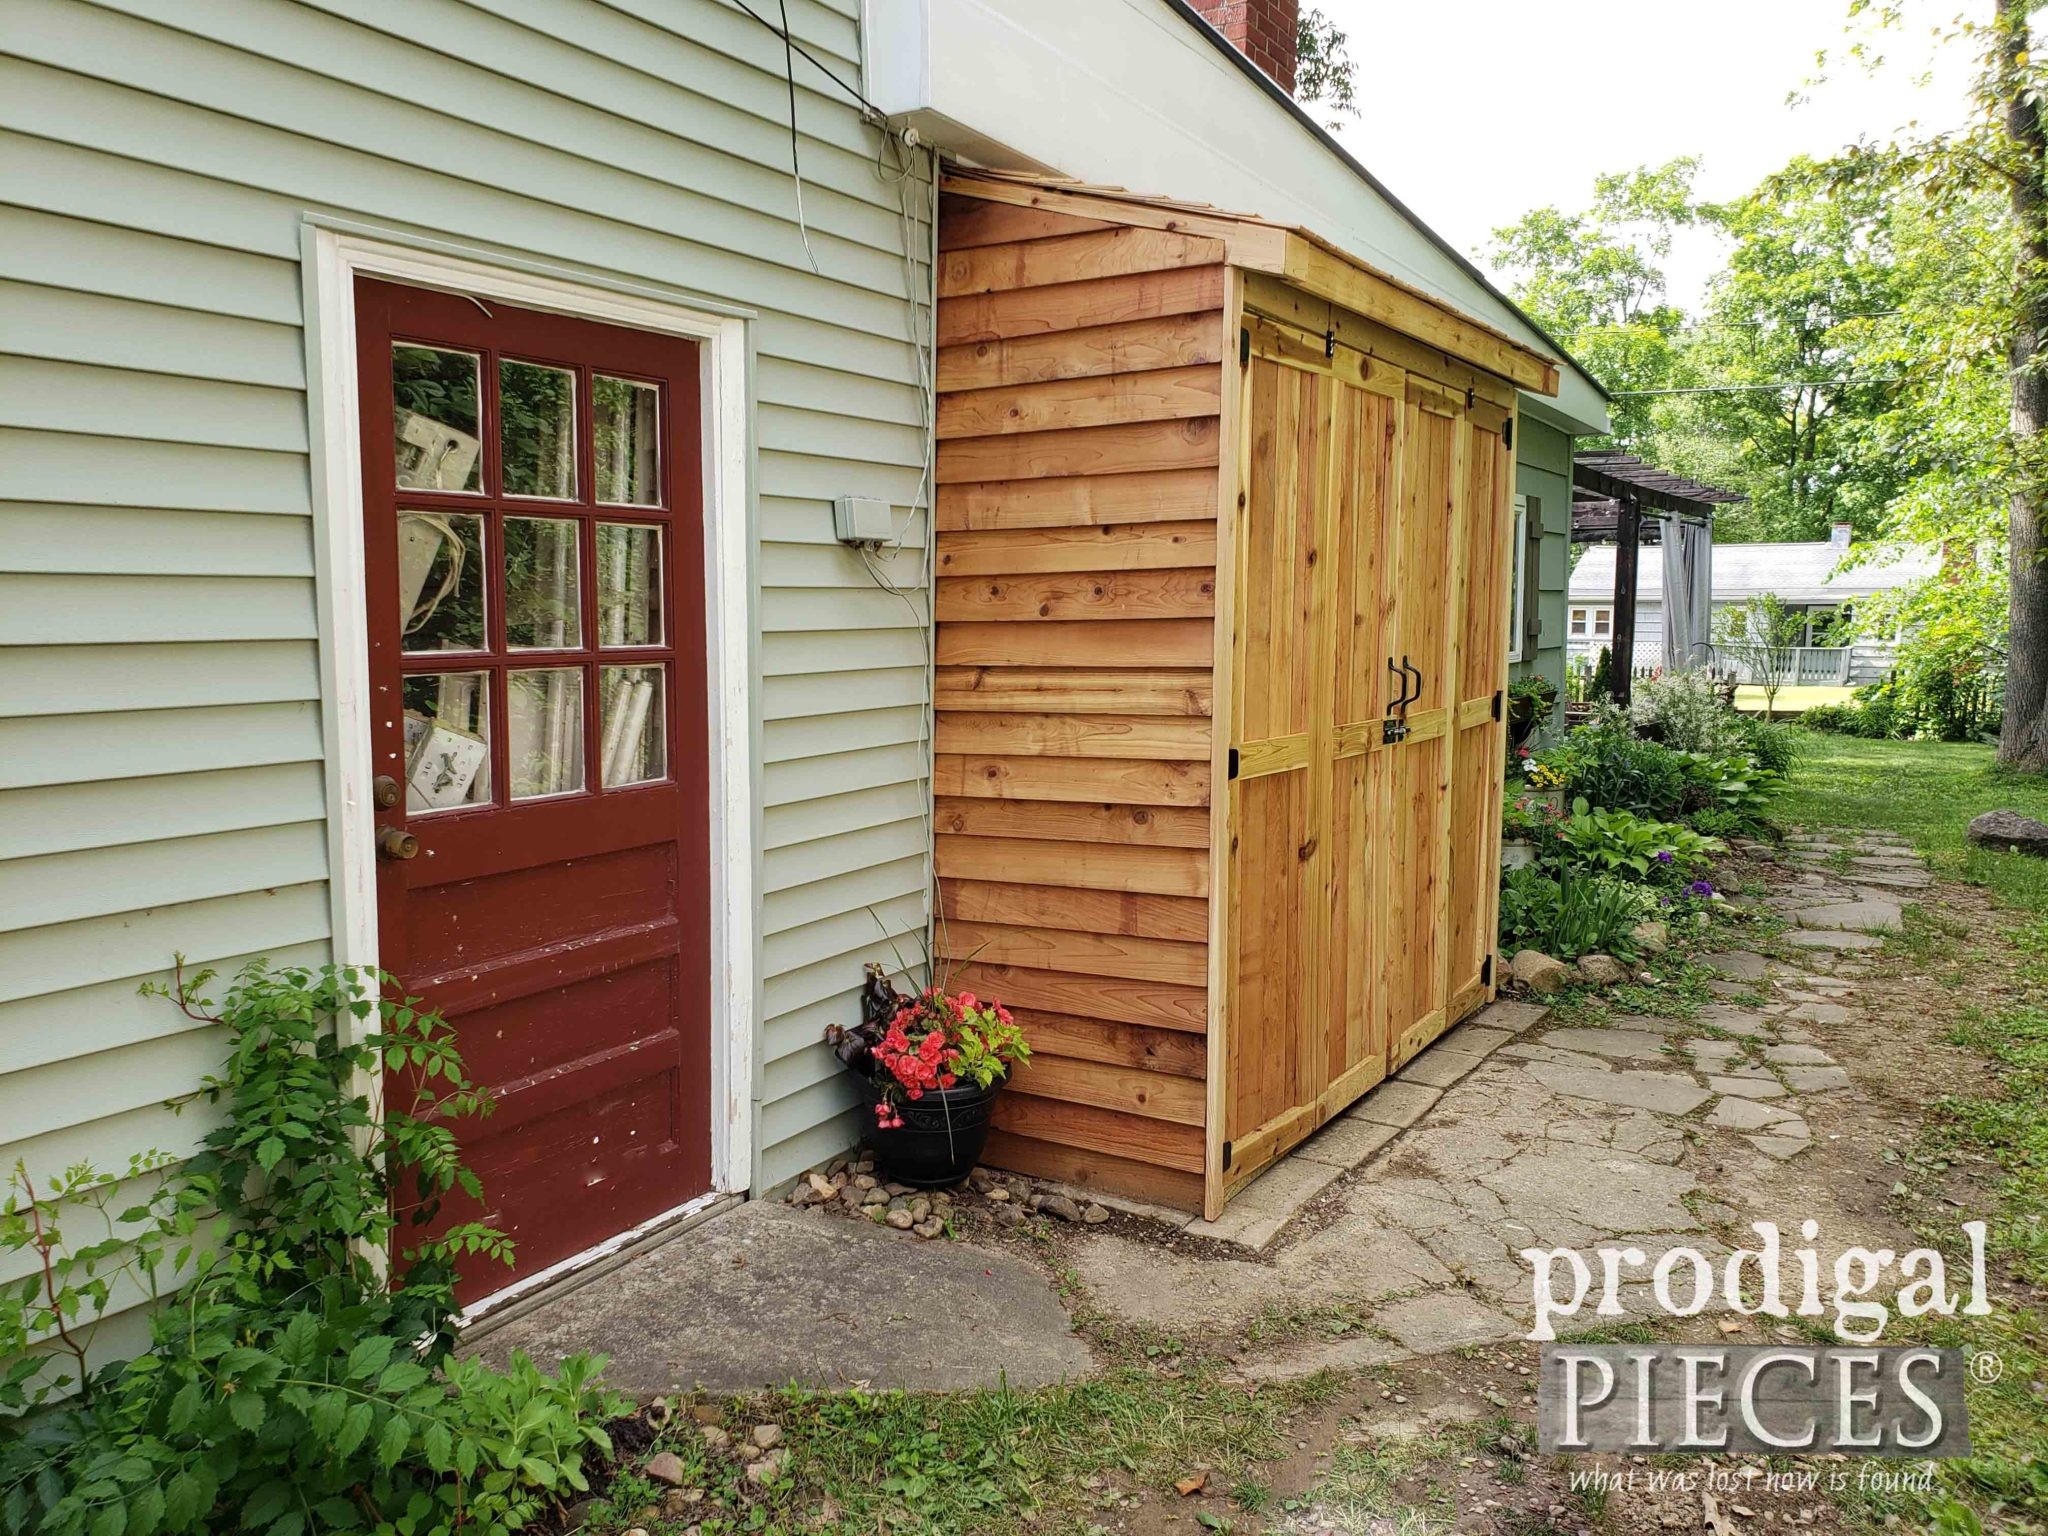 DIY Bike Garden Shed for Outdoor Storage | Video tutorial by Larissa of Prodigal Pieces | prodigalpieces.com #prodigalpieces #diy #home #outdoor #storage